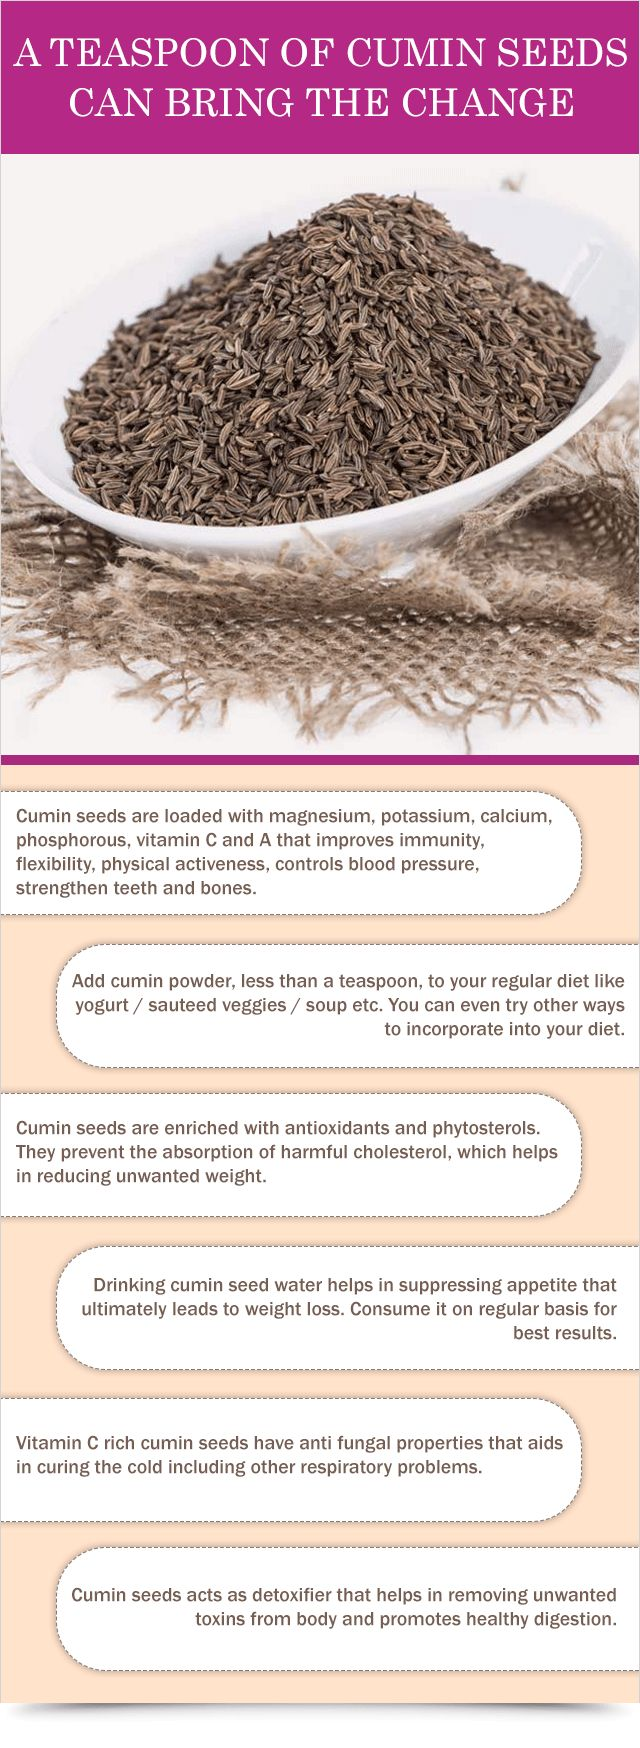 A Teaspoon Of Cumin Seeds : Health Products For You                                                                                                                                                                                 More